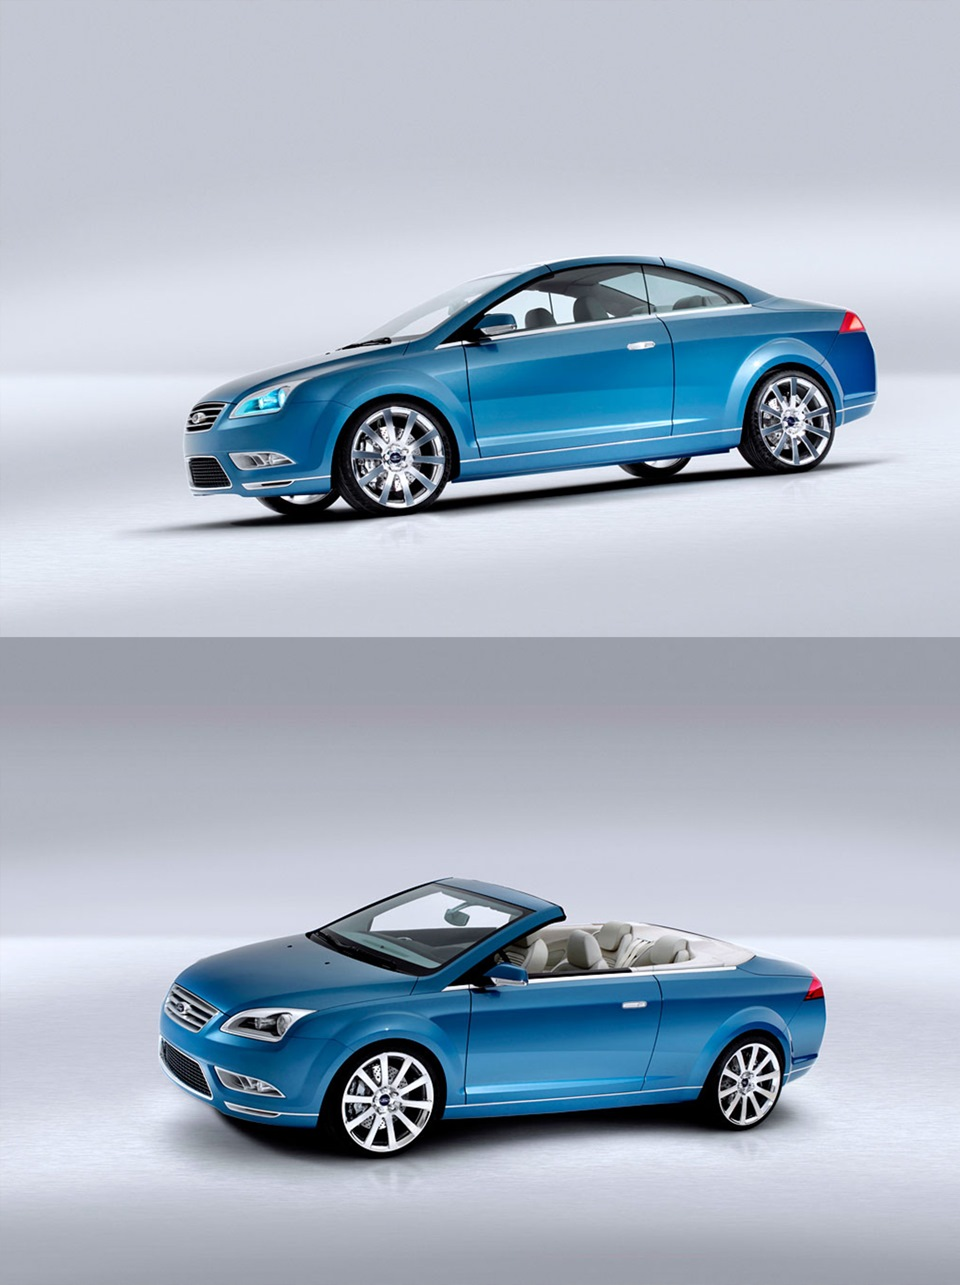 Ford Focus Coupe Cabriolet (Форд Фокус Купе Кабриолет)